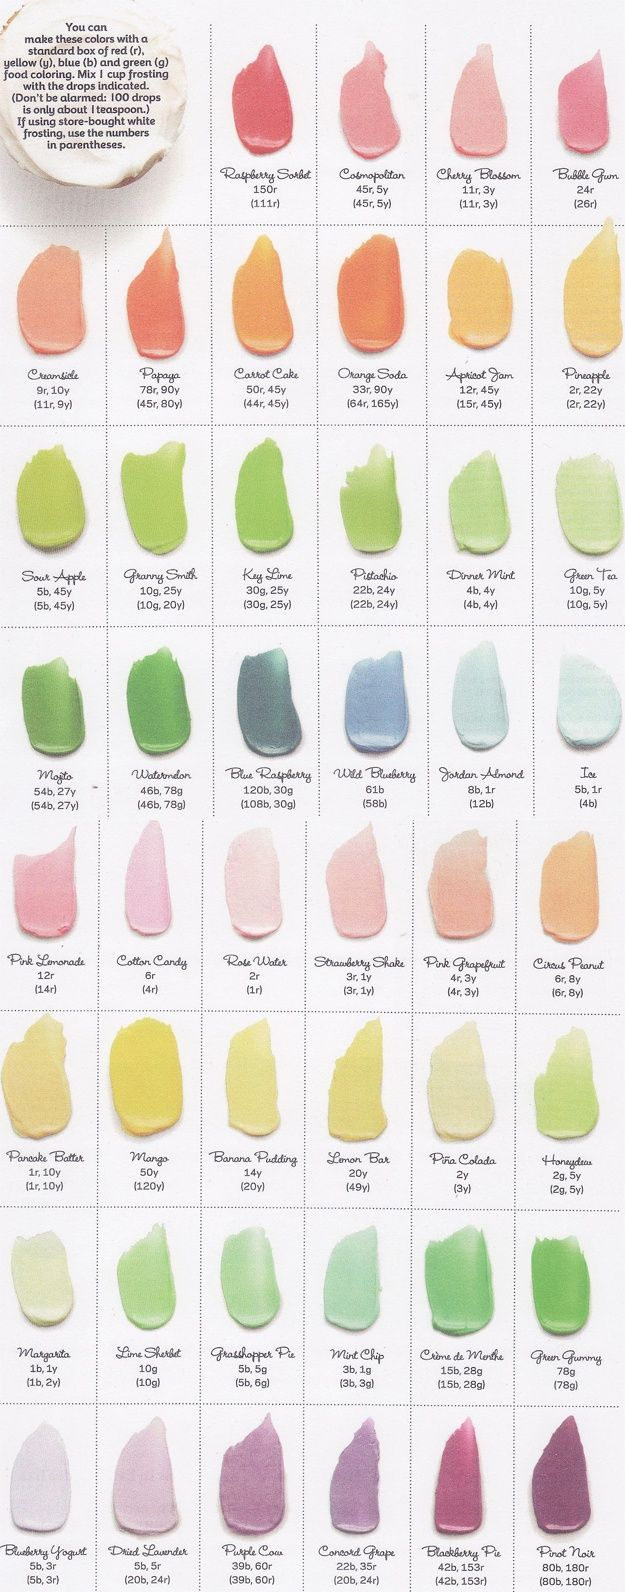 Make these colors with a standard box of red, yellow, blue and green food coloring.